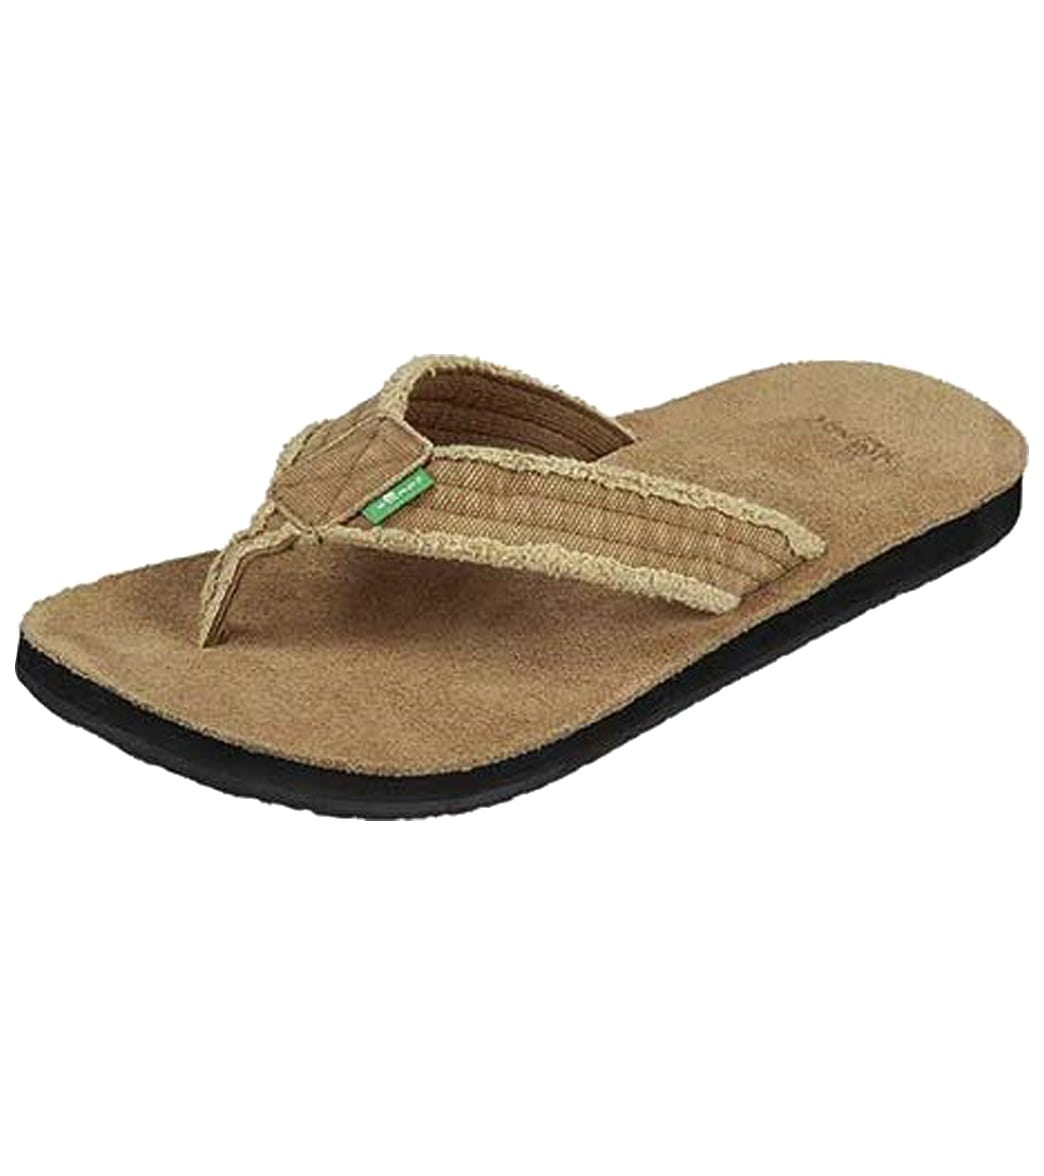 a92bc002849 Sanuk Men s Fraid Not Flip Flop at SwimOutlet.com